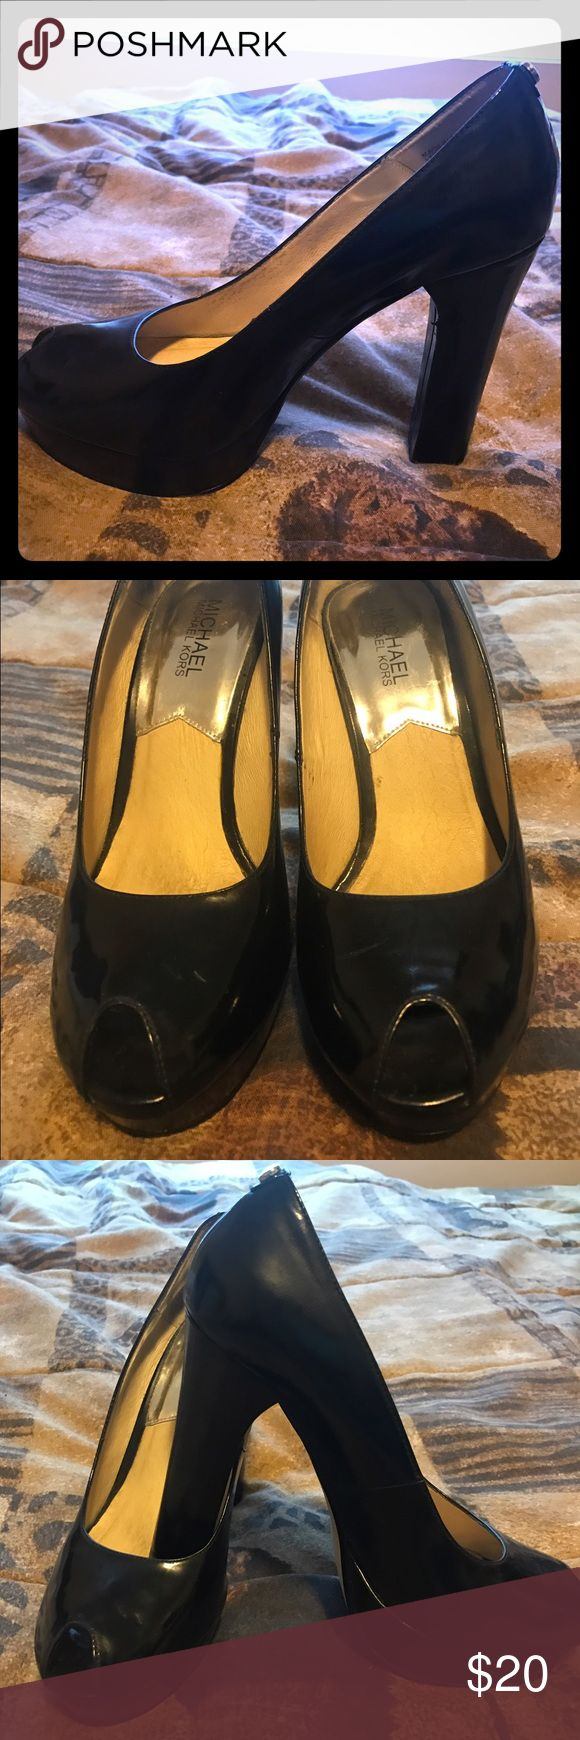 Gently worn Michael Kors shoes, size 8 These are gently worn Michael Kors shoes, size 8. Please ask me question or make me an offer. Thank you! Michael Kors Shoes Heels